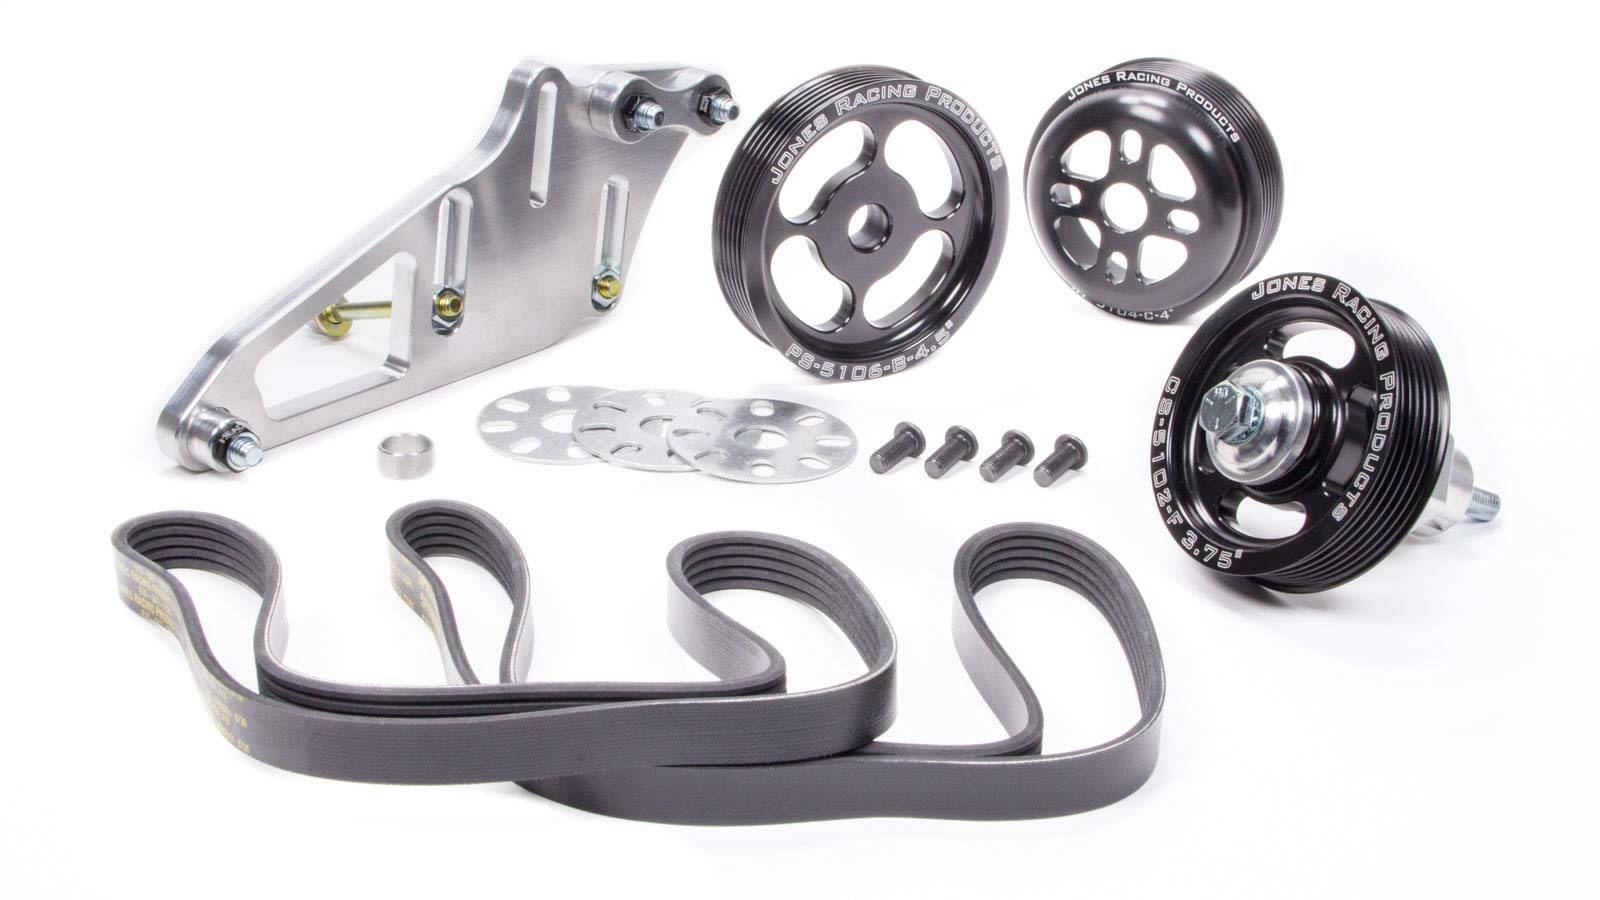 Jones Racing Products 1004-S-CE Pulley Kit, 6 Rib Serpentine, Aluminum, Black Anodize, Small Block Chevy, Kit